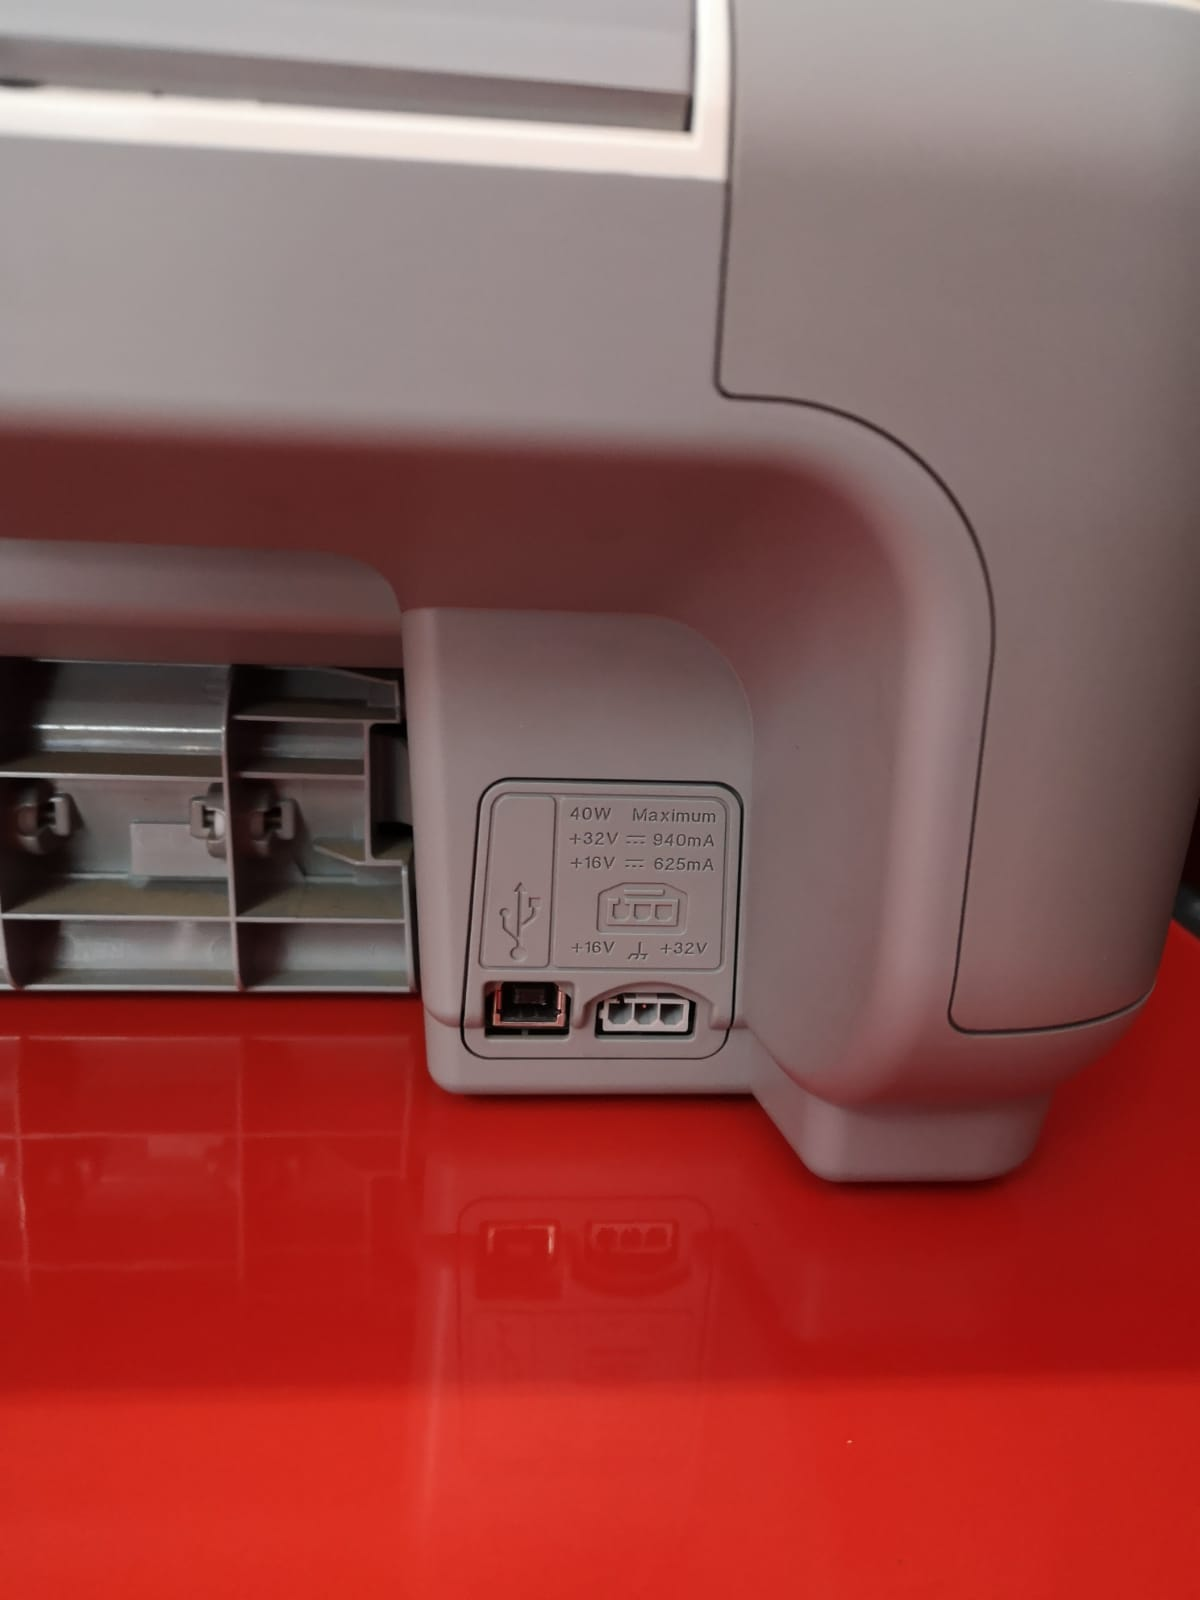 HP PSC 1513 All In One Colour Printer